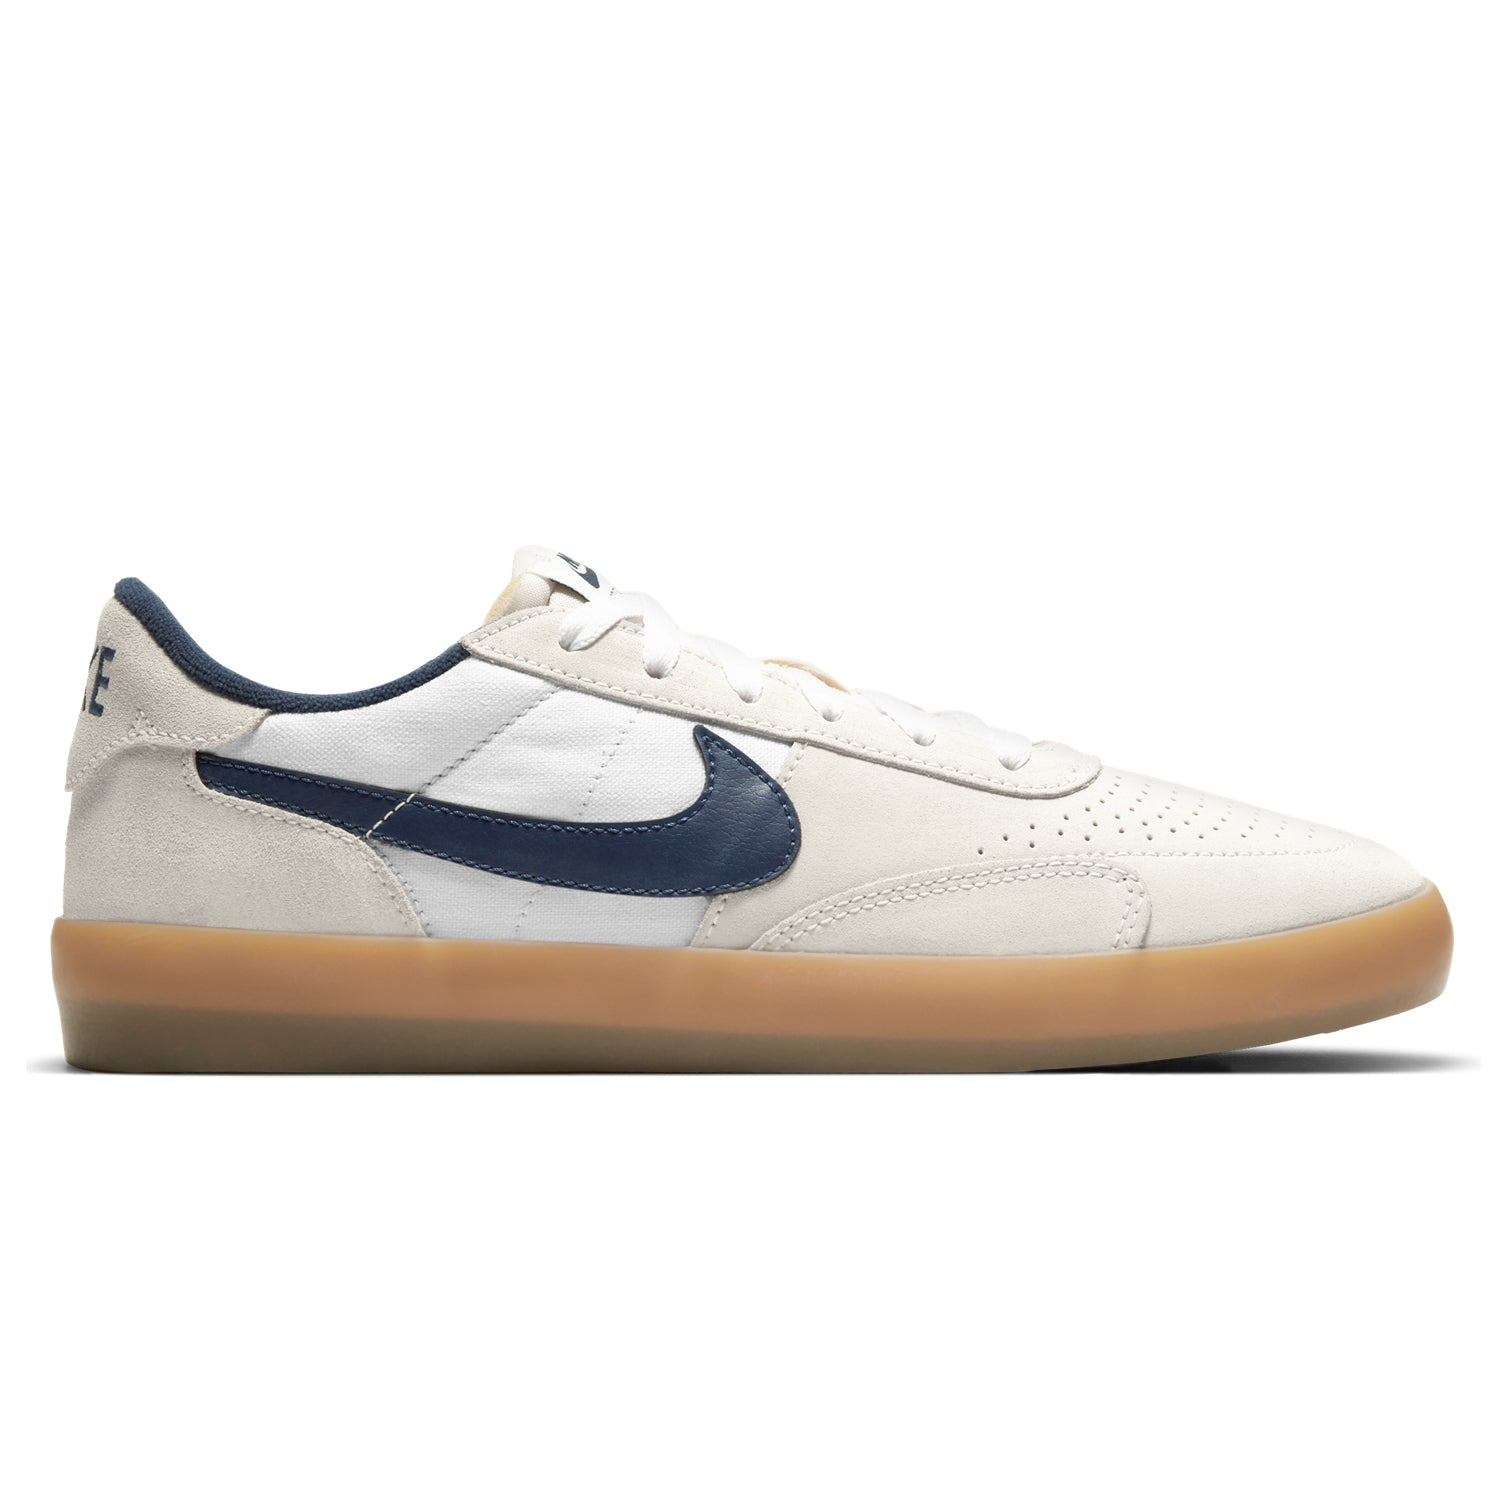 Nike SB Heritage Vulc Summit White/Gum Light Brown/Navy